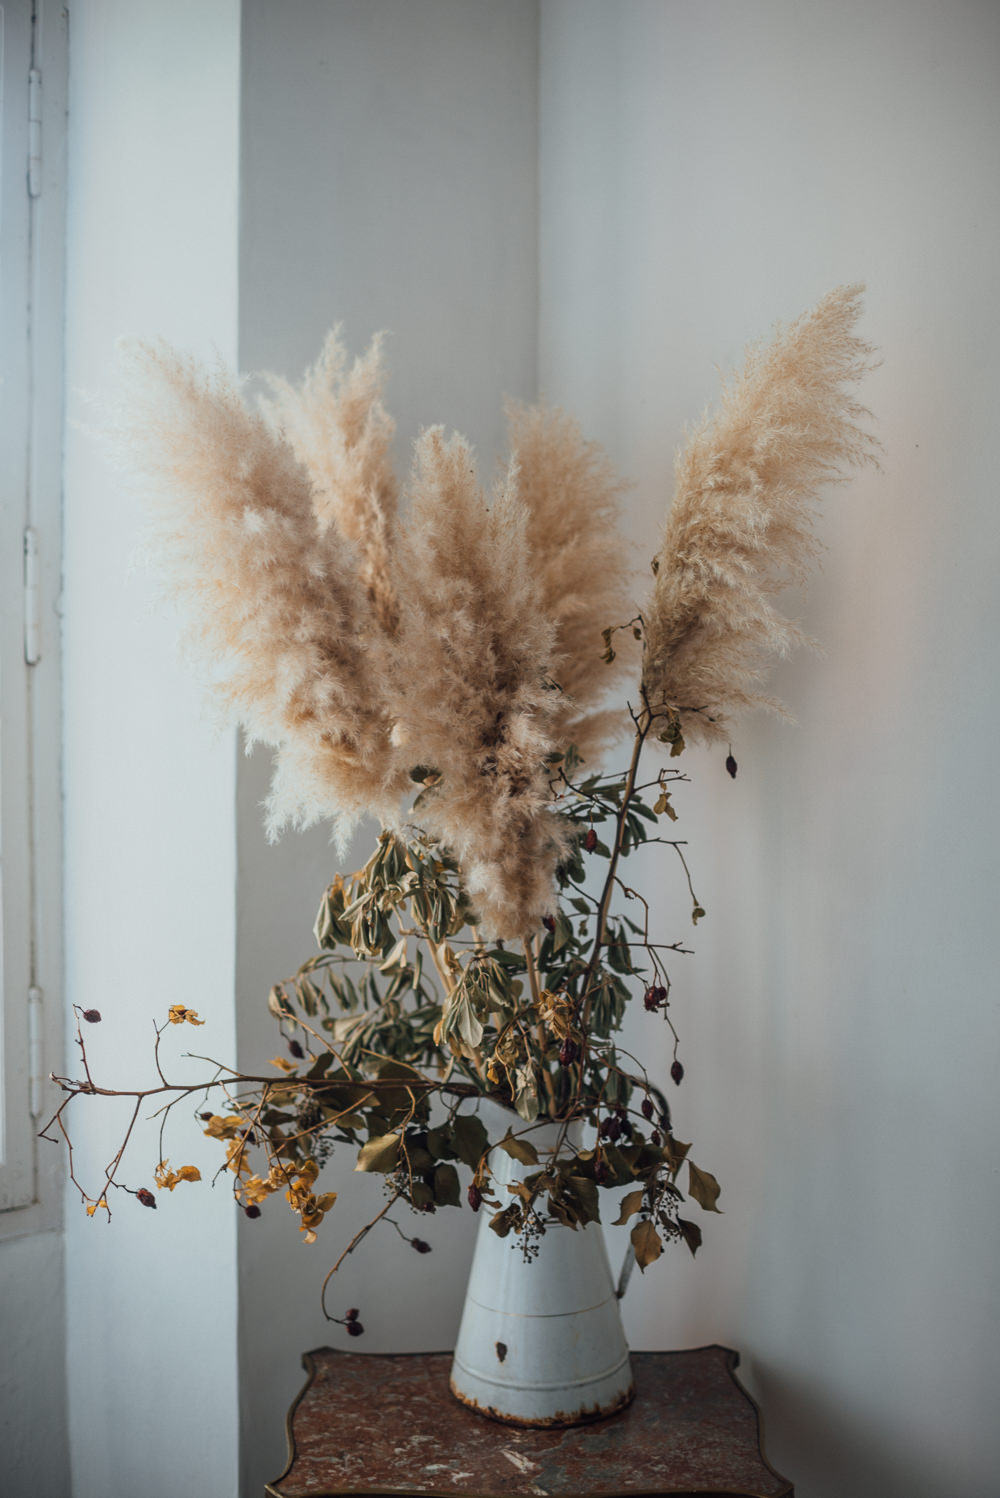 Flowers Vase Pampas Grass France Destination Wedding The Shannons Photography